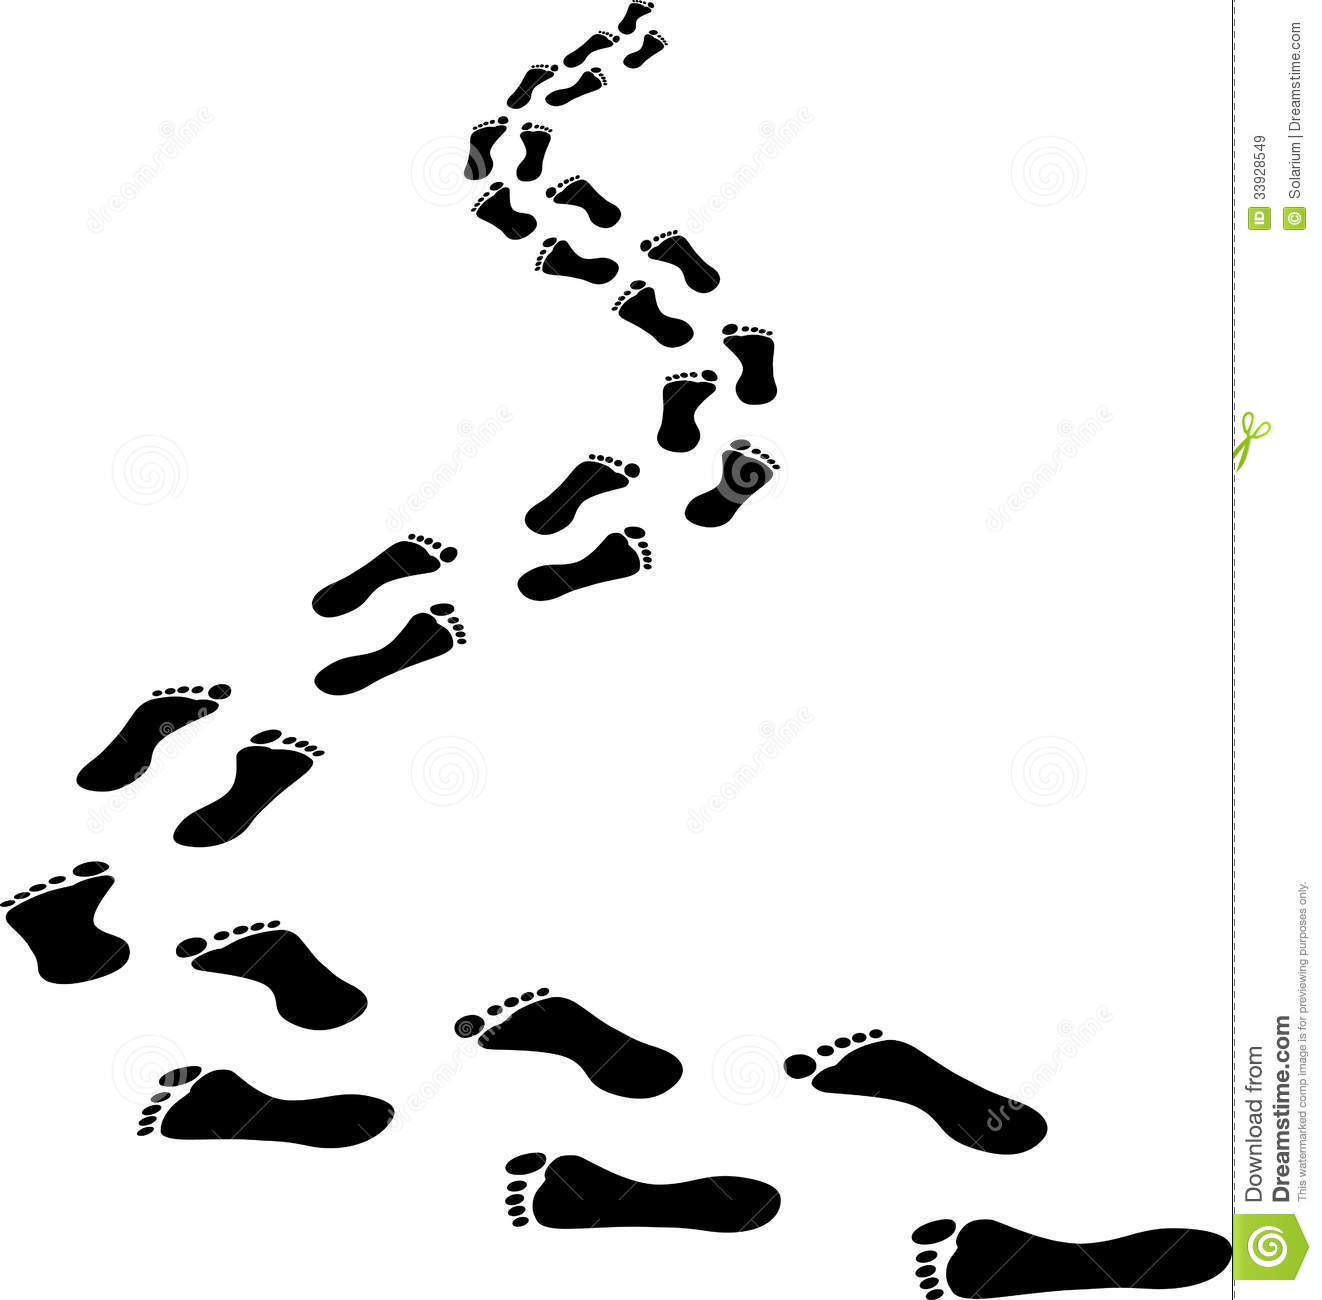 Jesus footprints in the sand clipart.